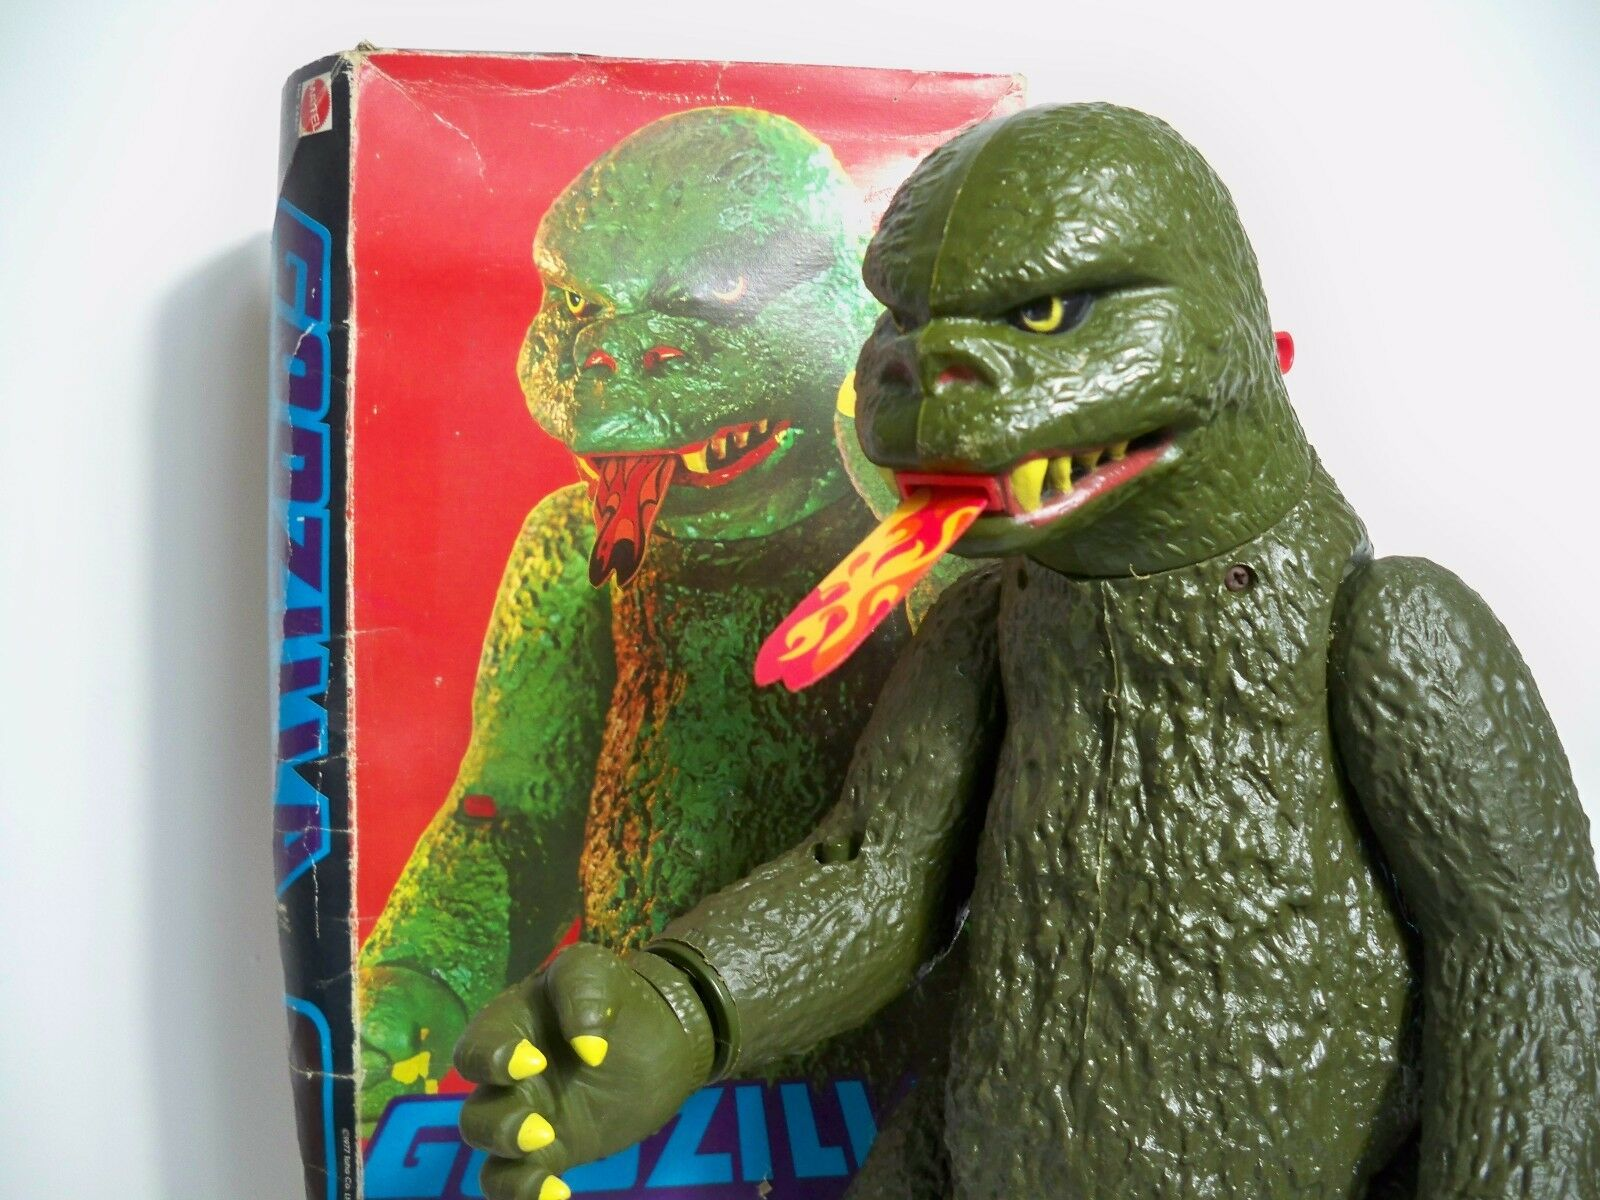 D1049714 D1049714 D1049714 GODZILLA TOHO 1977 MATTEL SHOGUN WARRIORS NOTHING BROKEN COMPLETE BOX 1af906